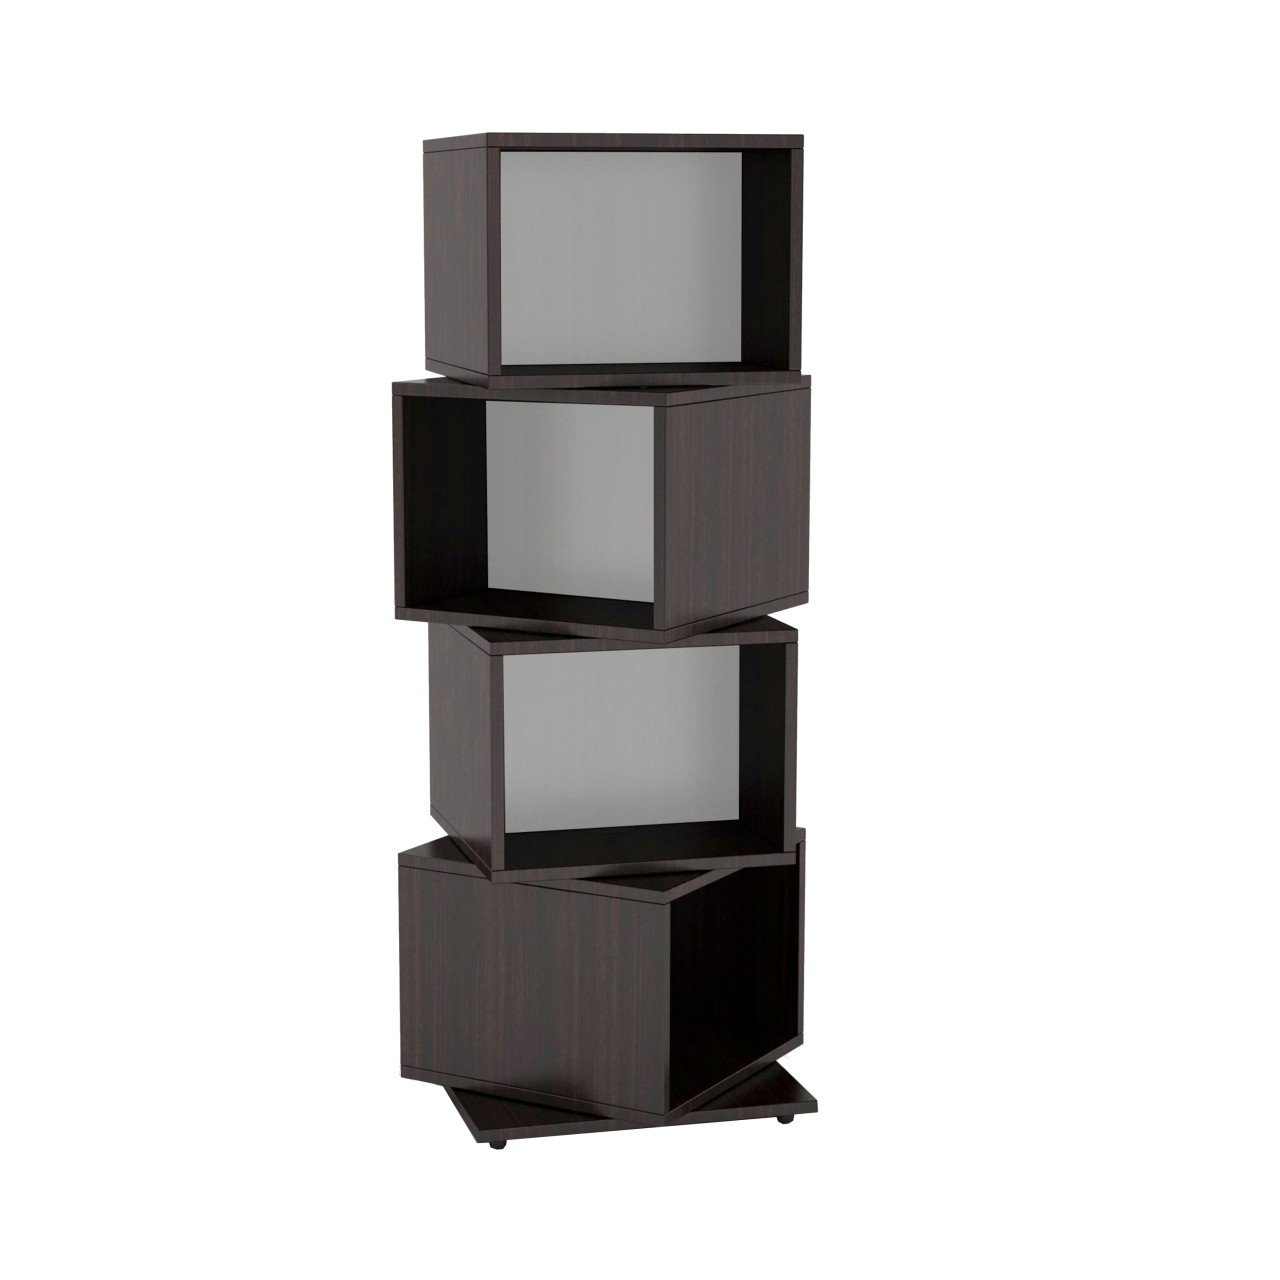 Captivating Amazon.com: Atlantic 2823 5872 Rotating Cube 4 Tier Espresso Multimedia Storage  Tower: Home Audio U0026 Theater